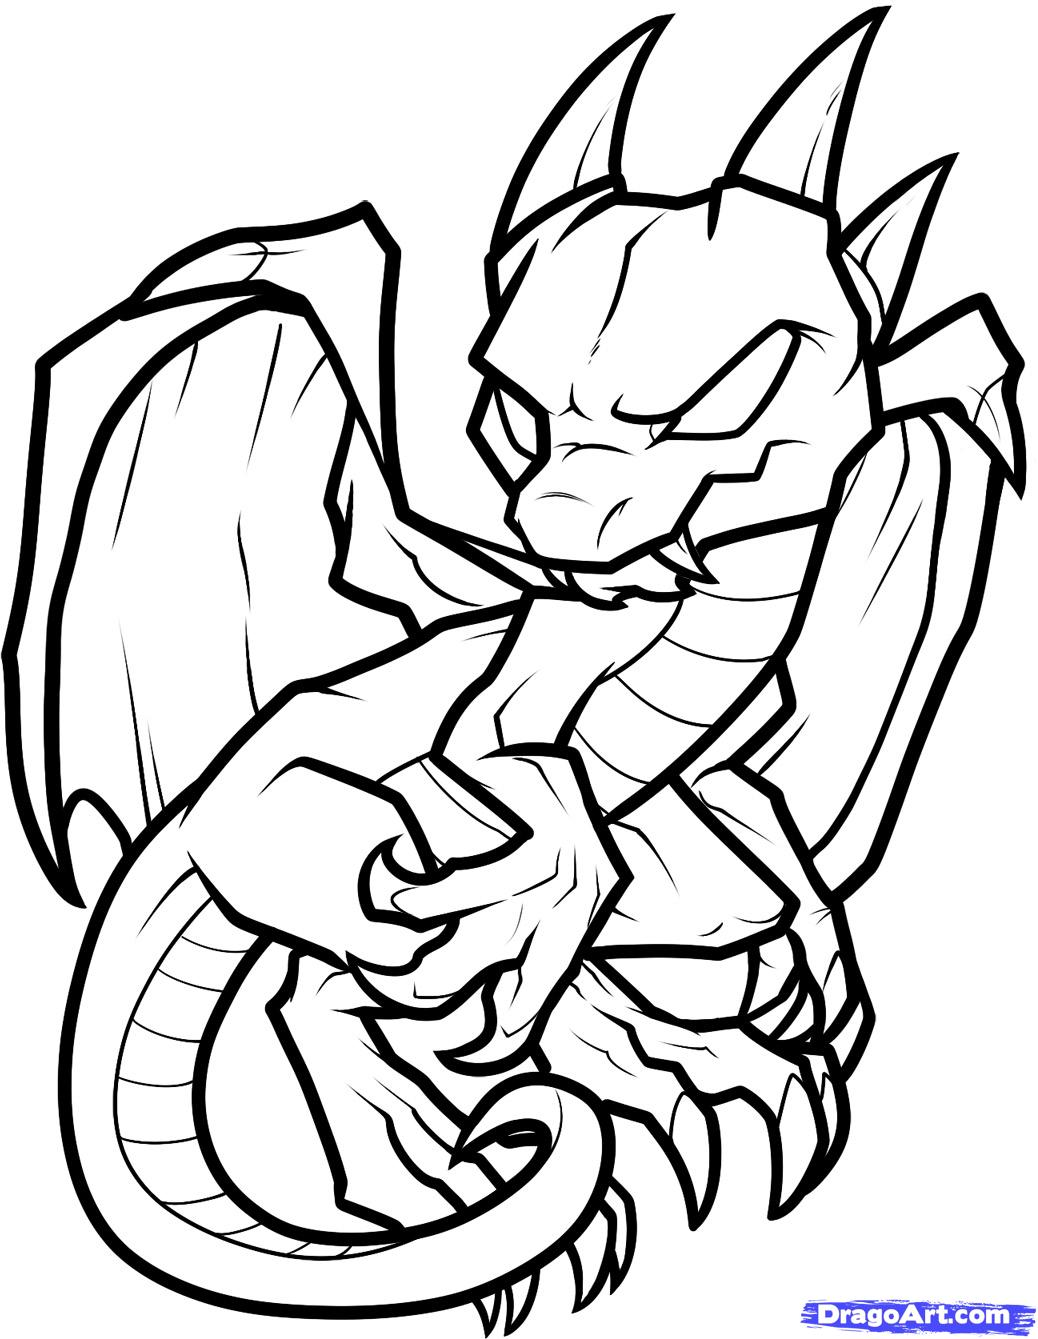 dragon coloring pages free baby dragon coloring pages to download and print for free dragon coloring pages free